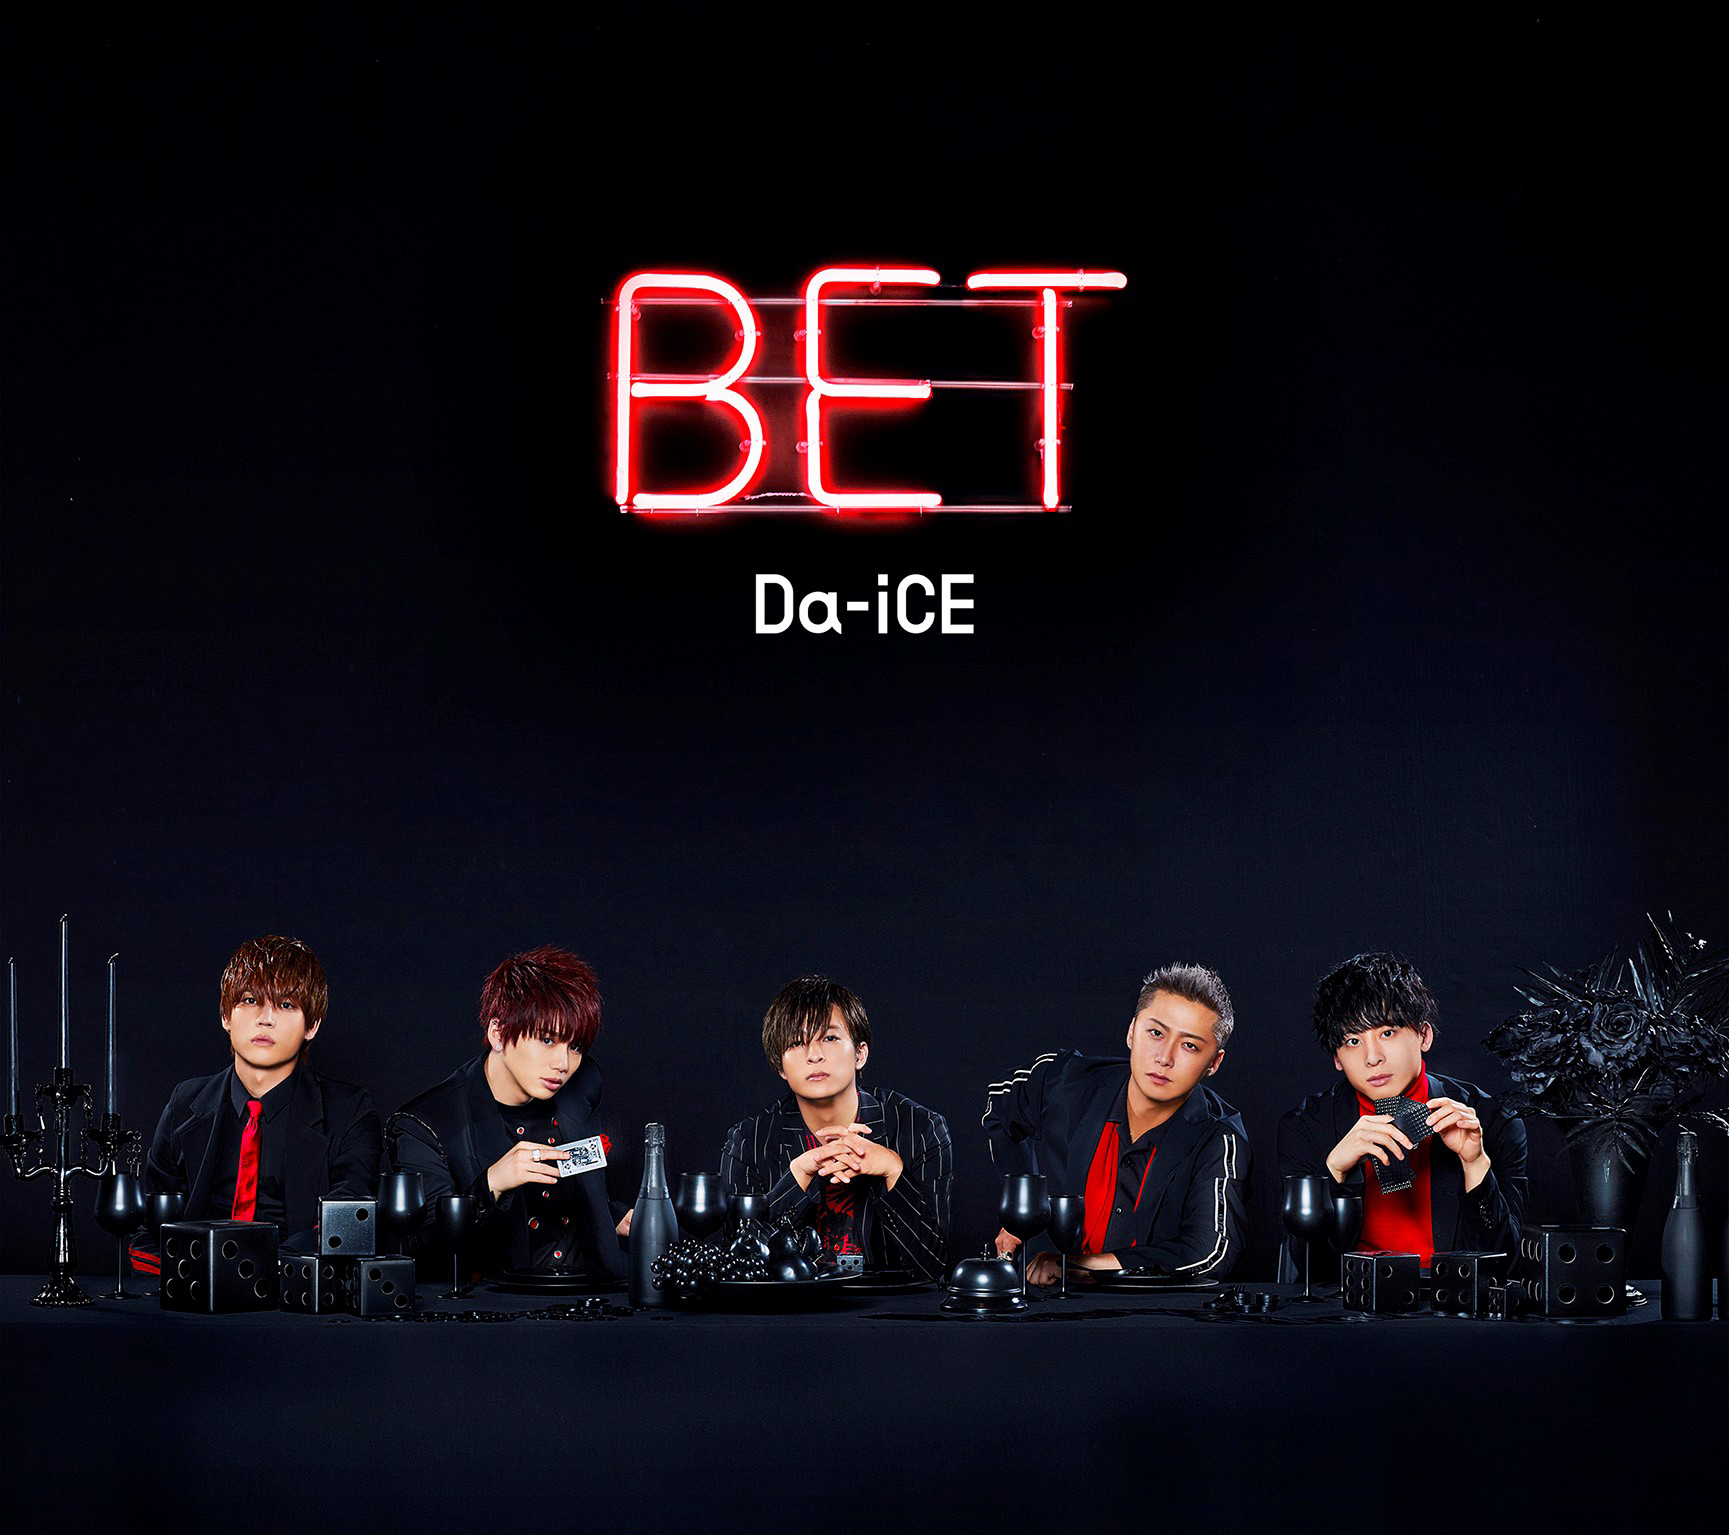 Da-iCE 4th album 『BET』初回限定盤A